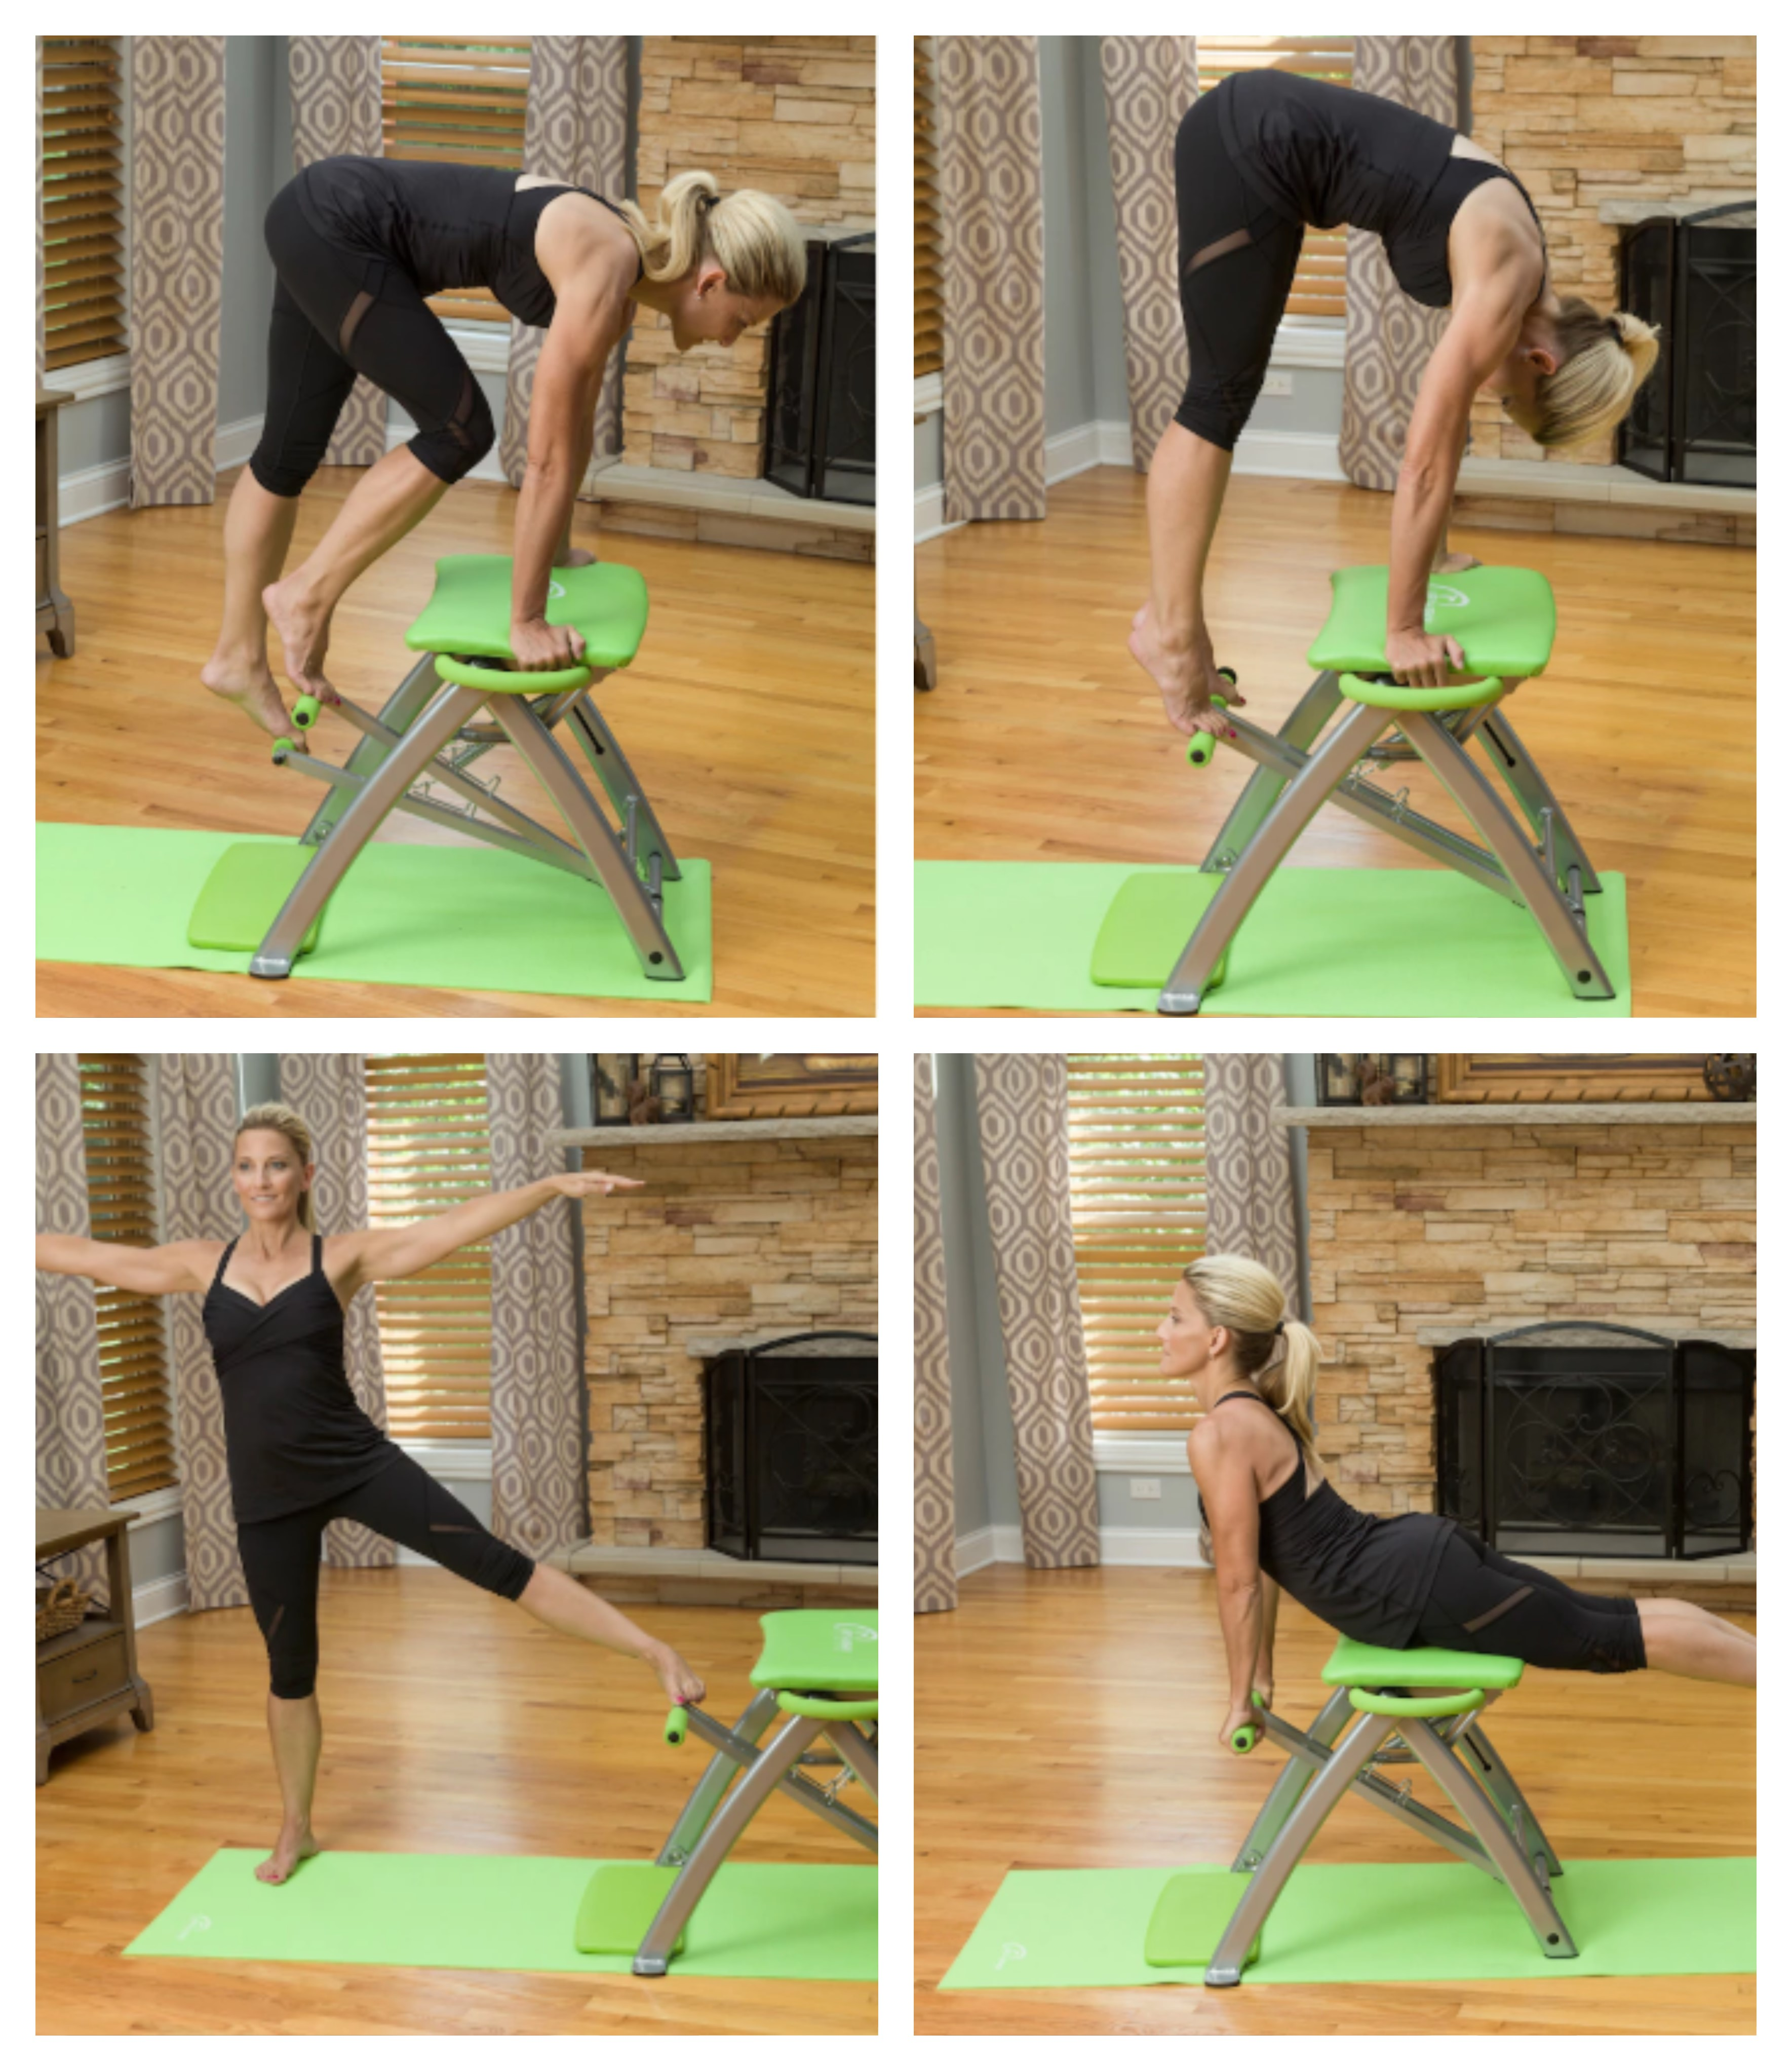 malibu pilates chair foam toddler new pro with sculpting handles and workout